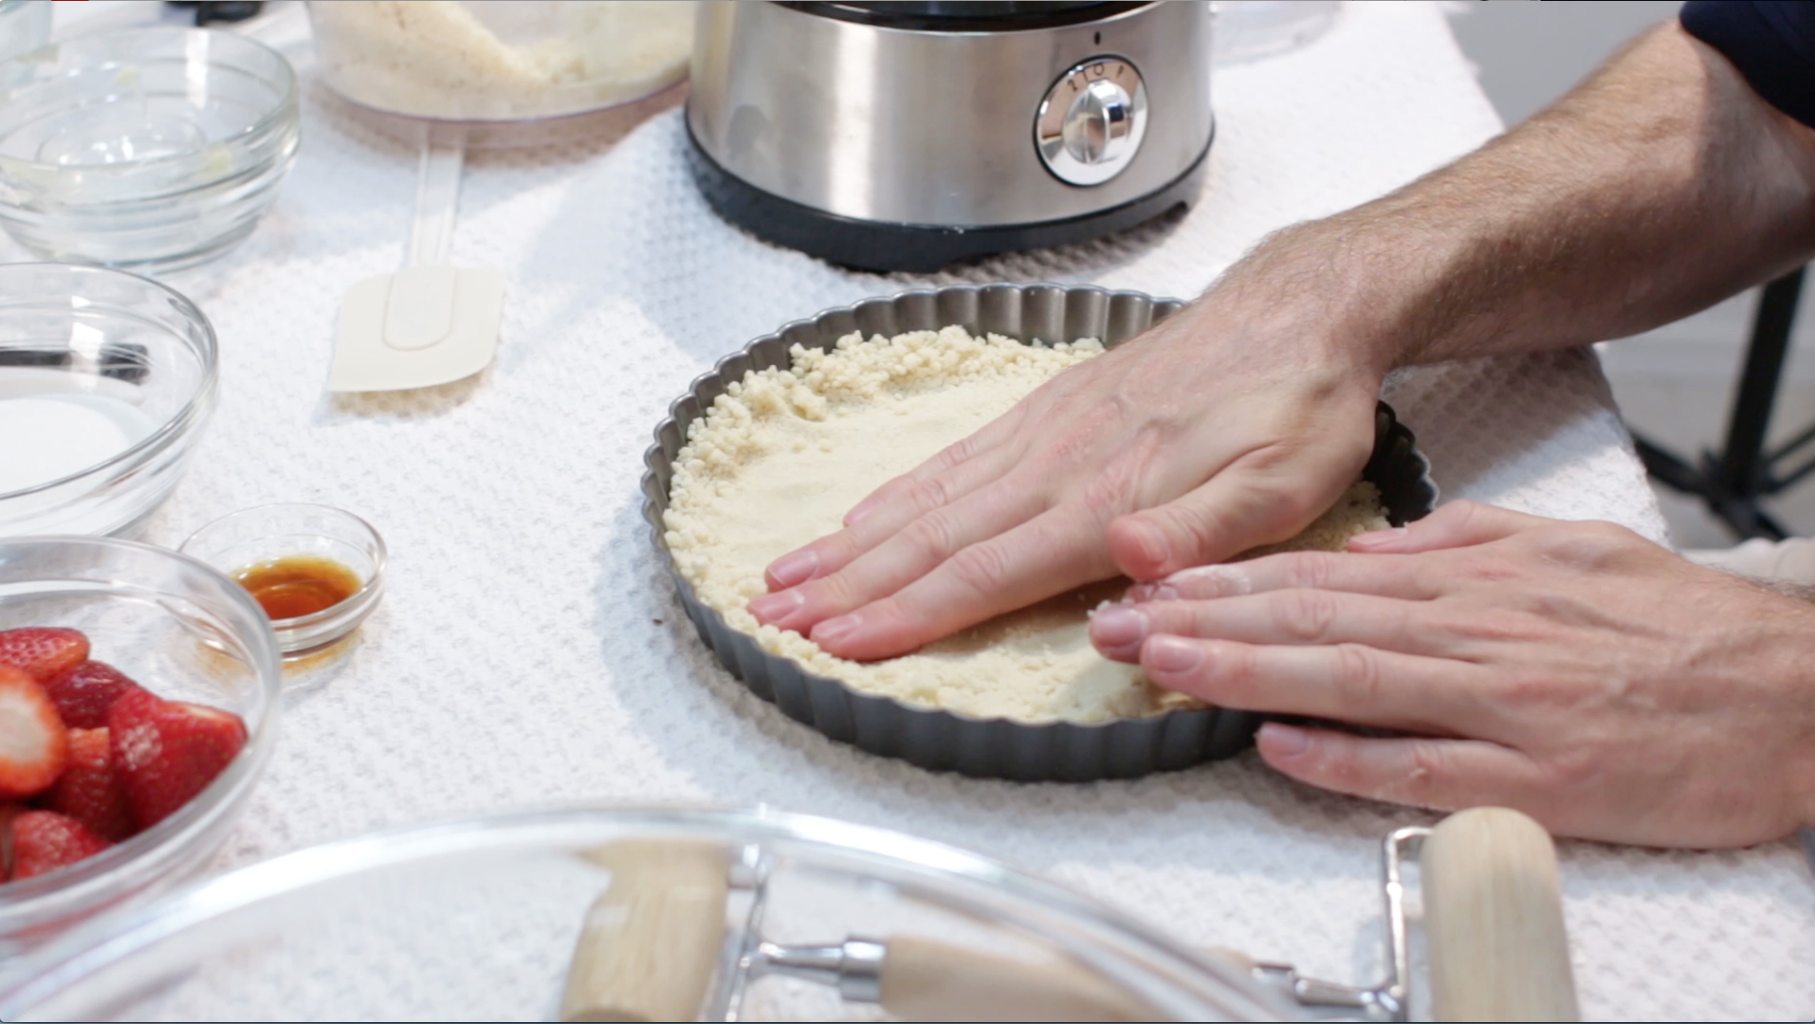 Add Pastry Crumble to Tart Pan